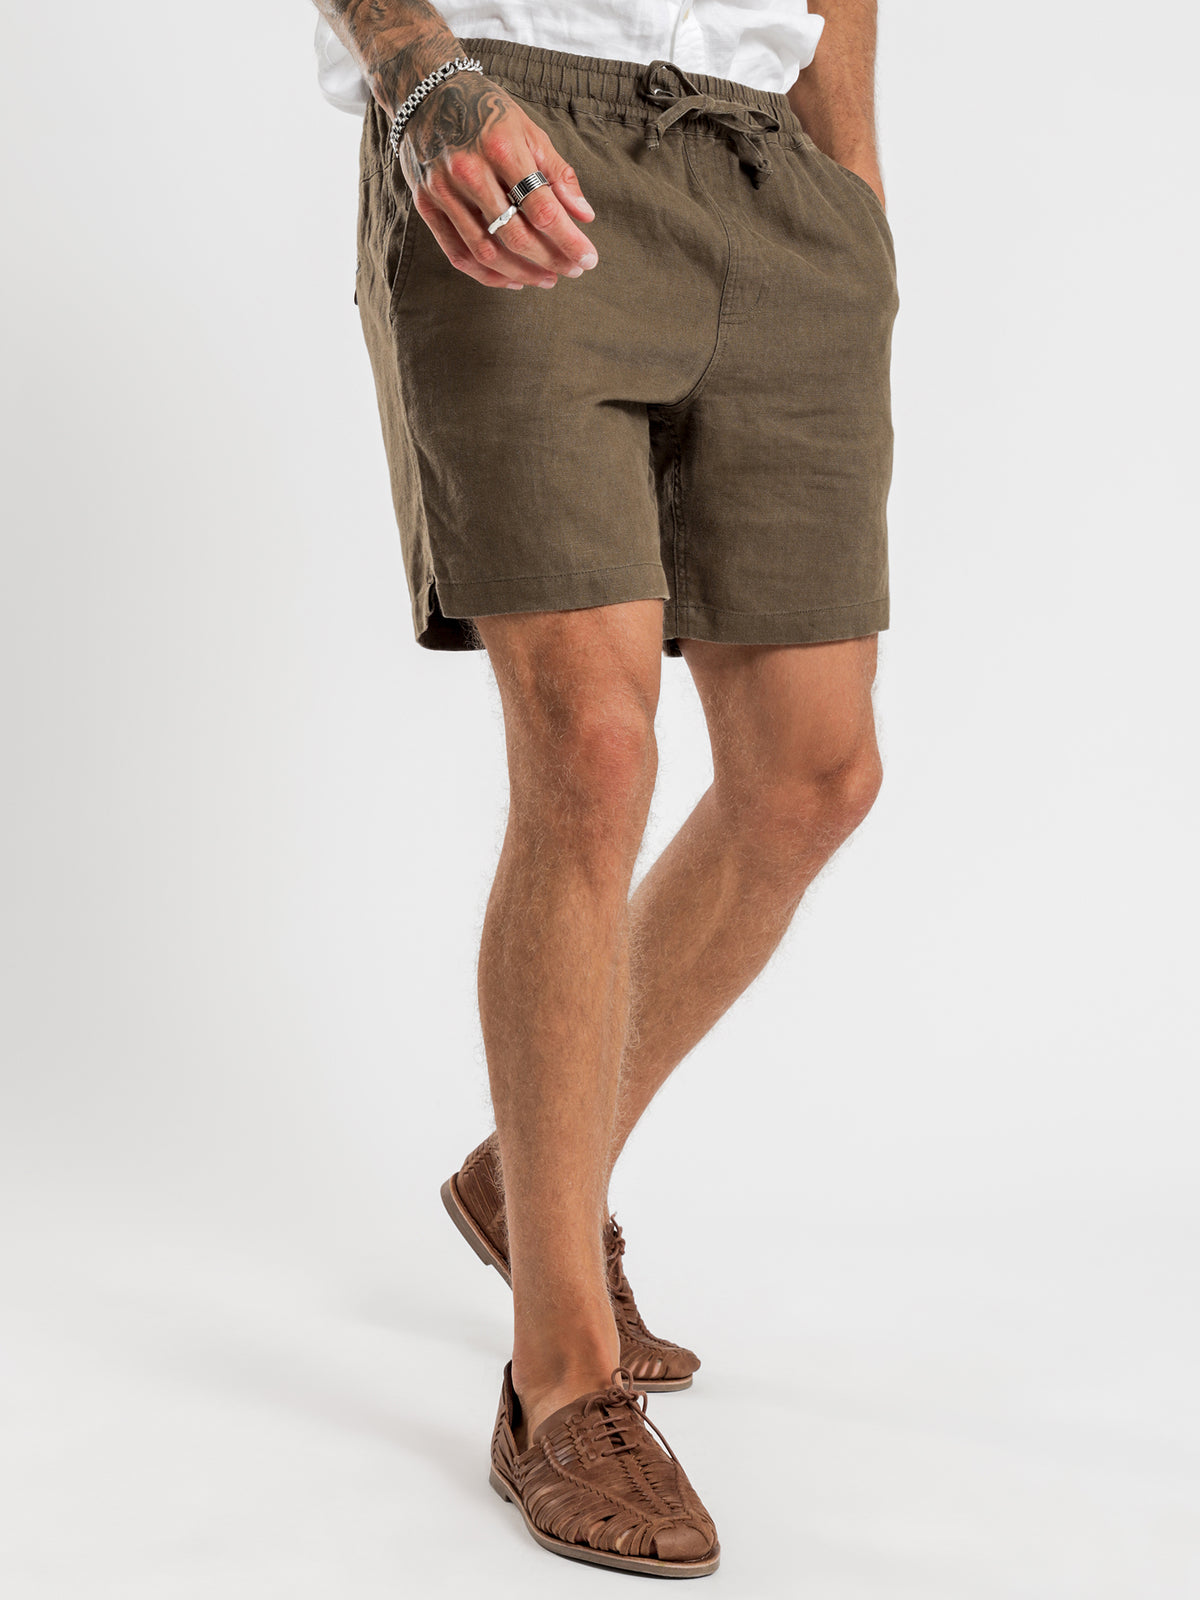 Riviera Linen Shorts in Olive